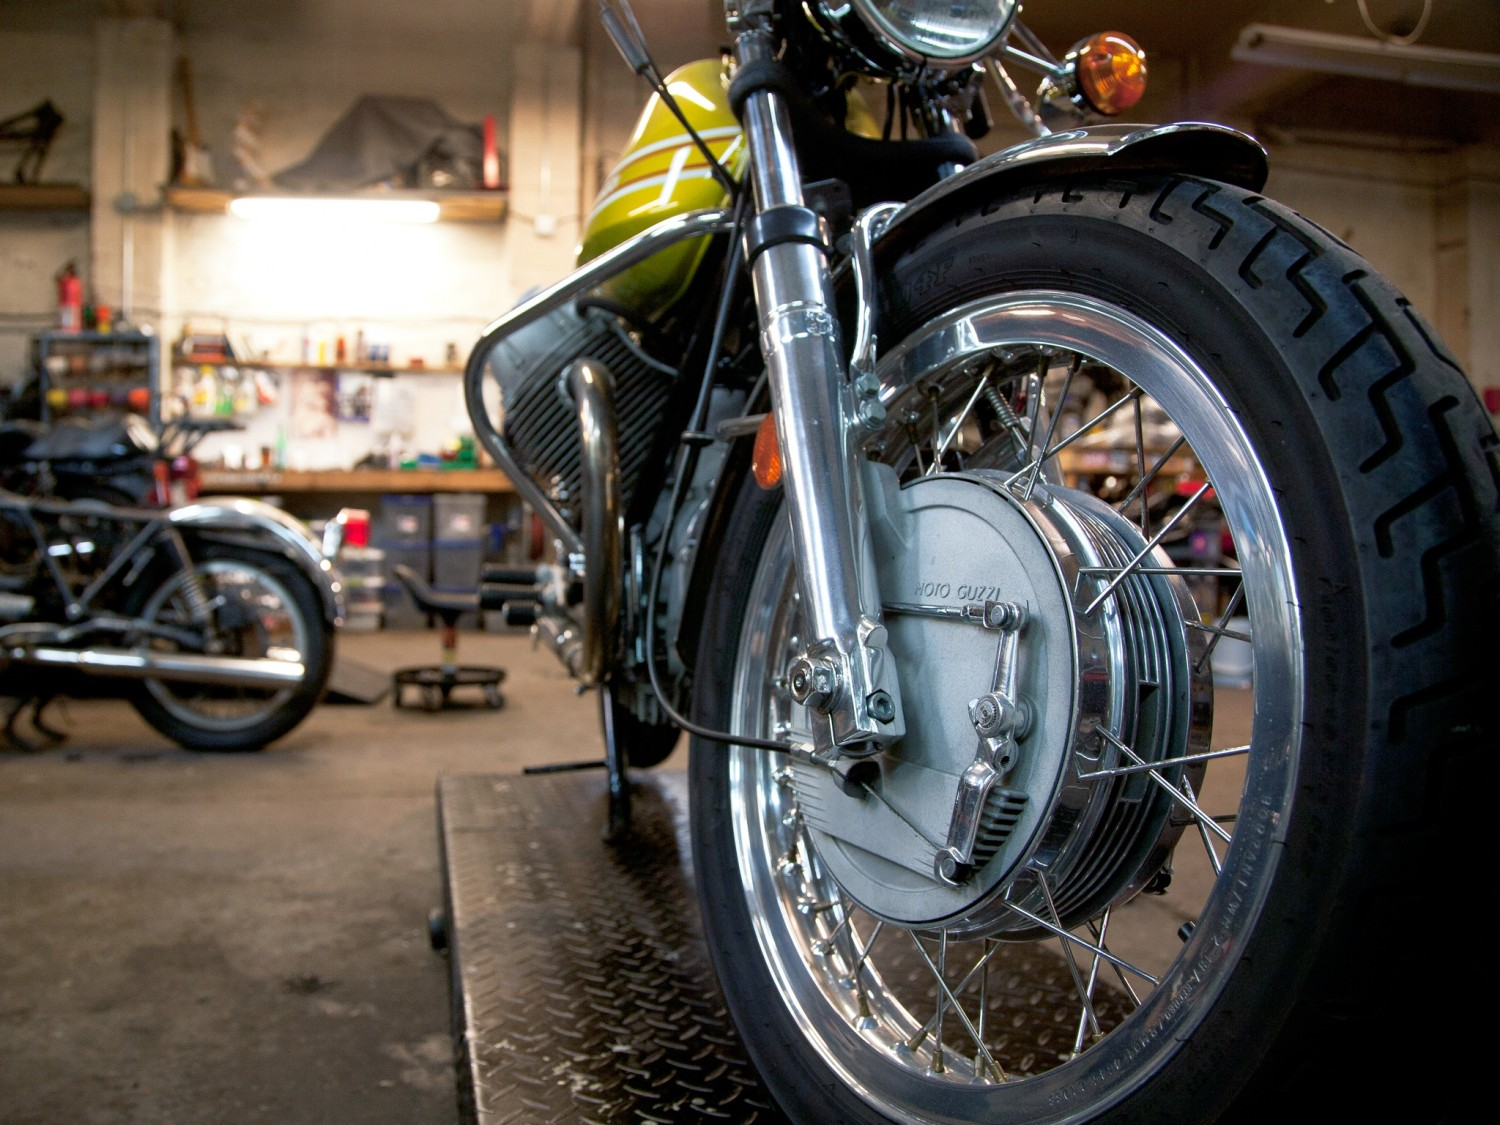 MotorcycleCollision Repair - Motorcycle Services